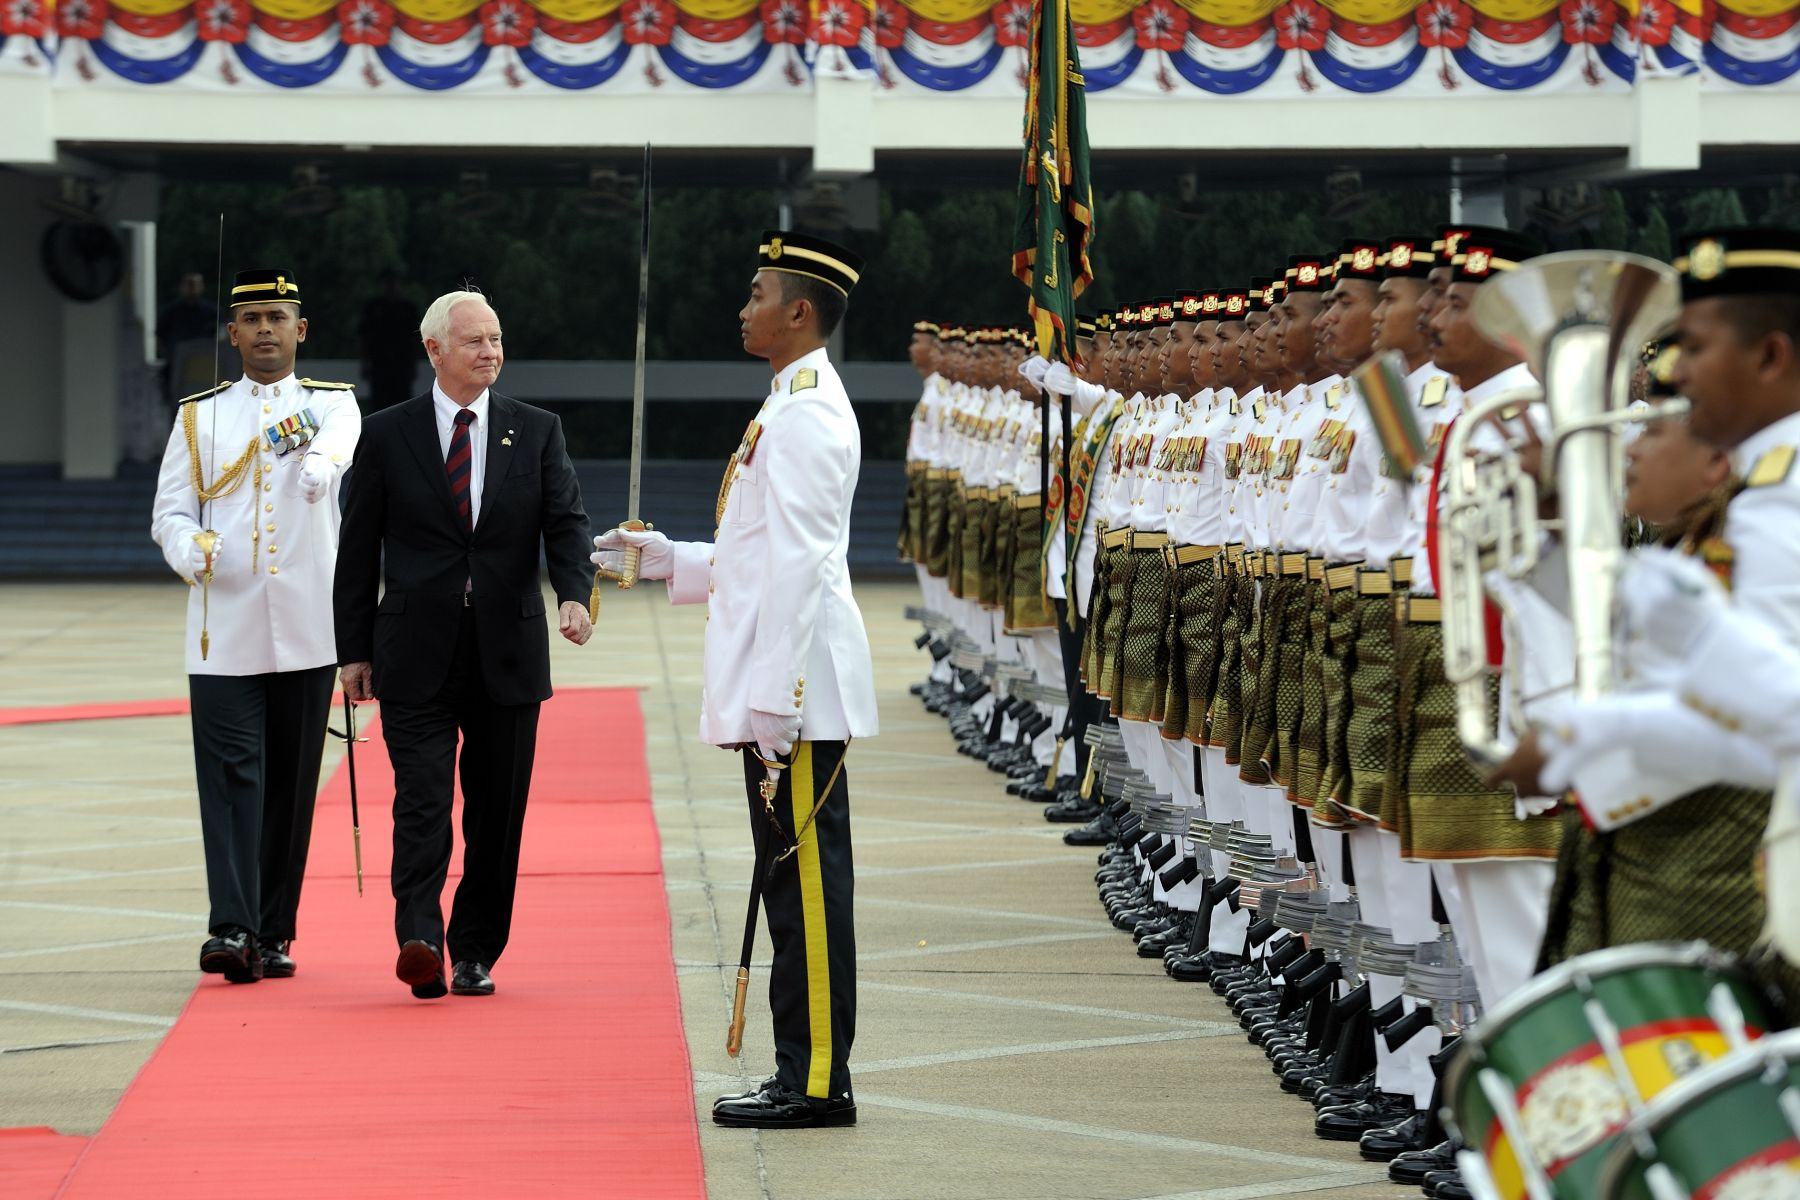 During the official welcoming ceremony, the Governor General conducted an inspection of the guard of honour.